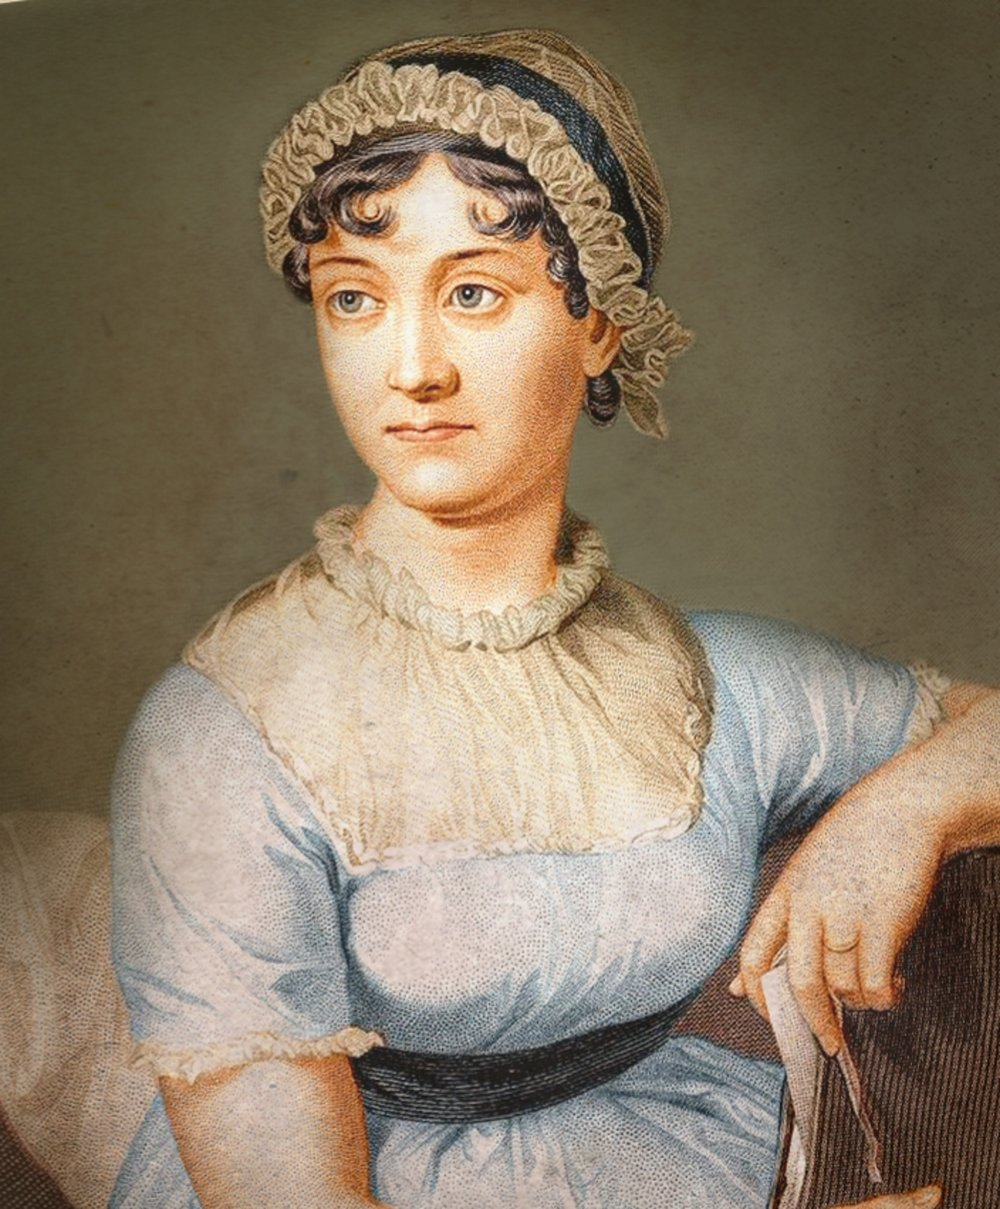 Jane Austen Festival celebrates one of history's most beloved authors, December 6-8